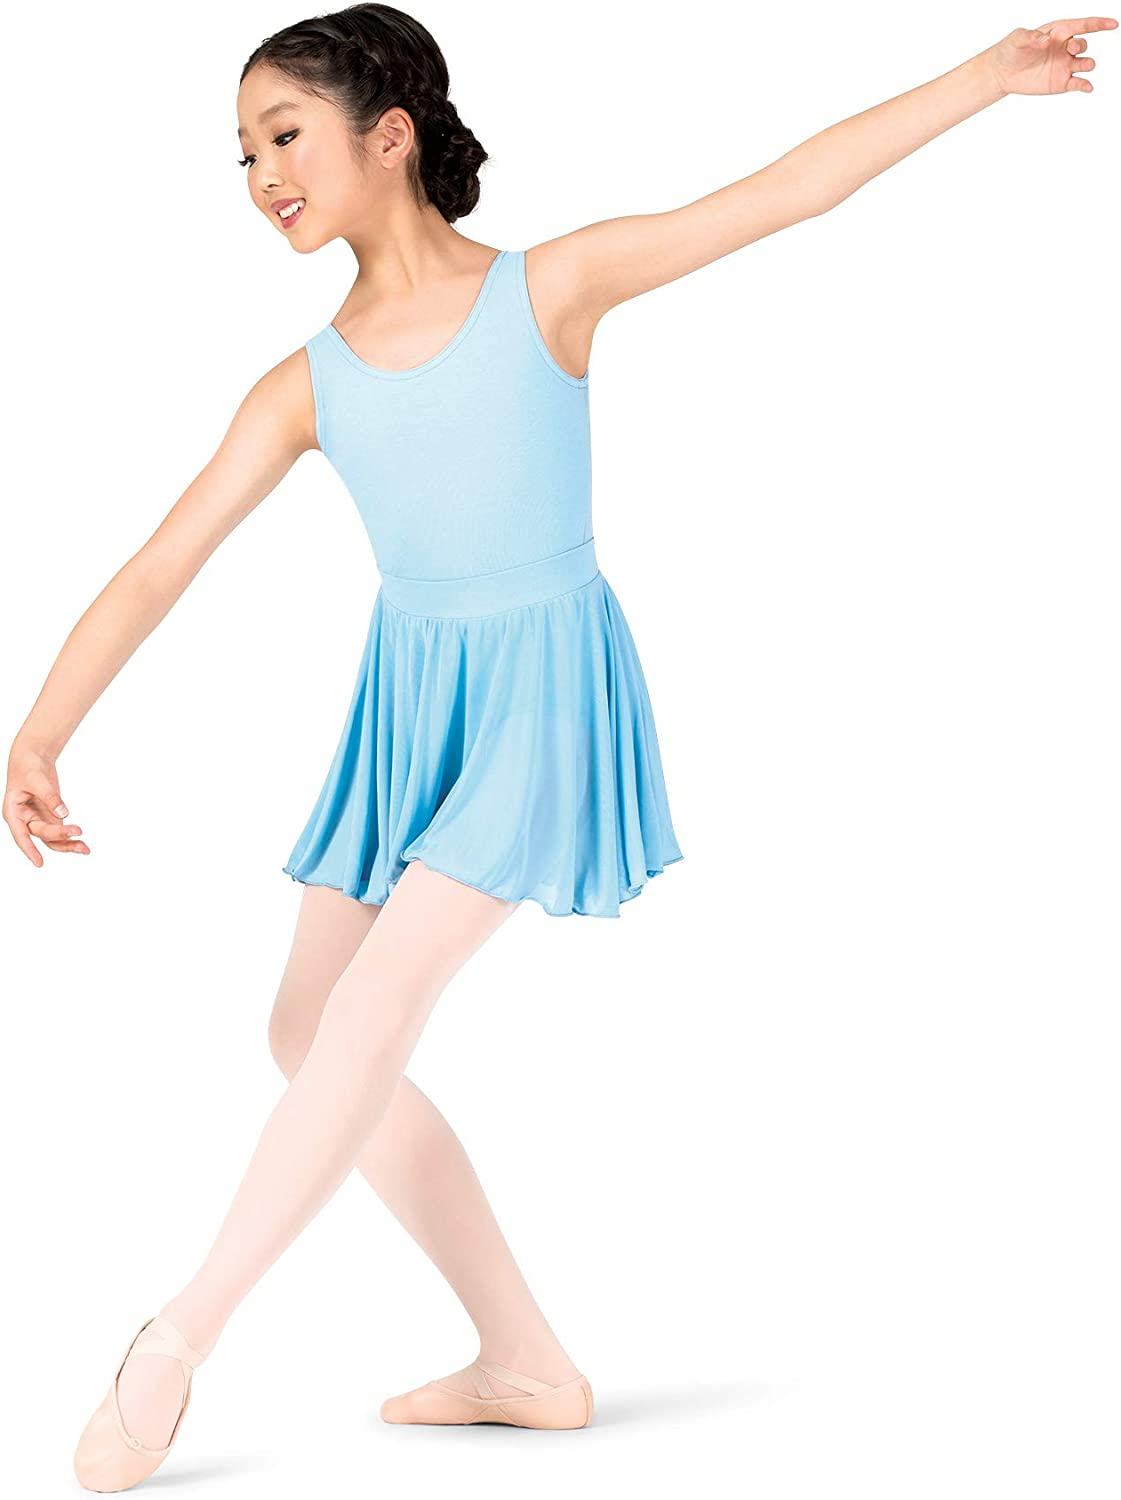 Theatricals Child Pull-On Skirt TH5513C